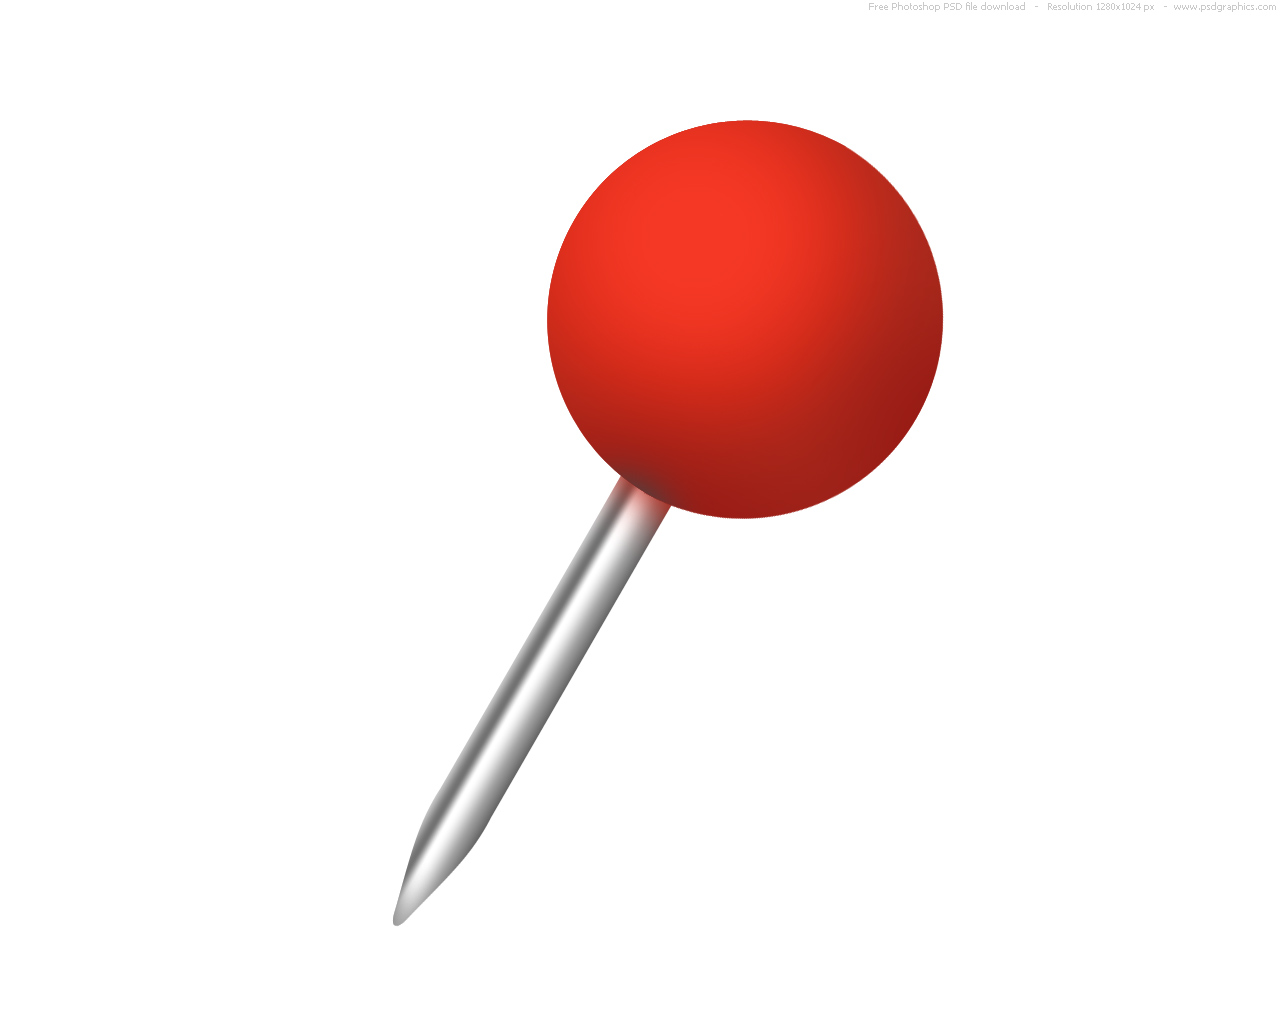 Pushpin Download Png High-quality image #27721